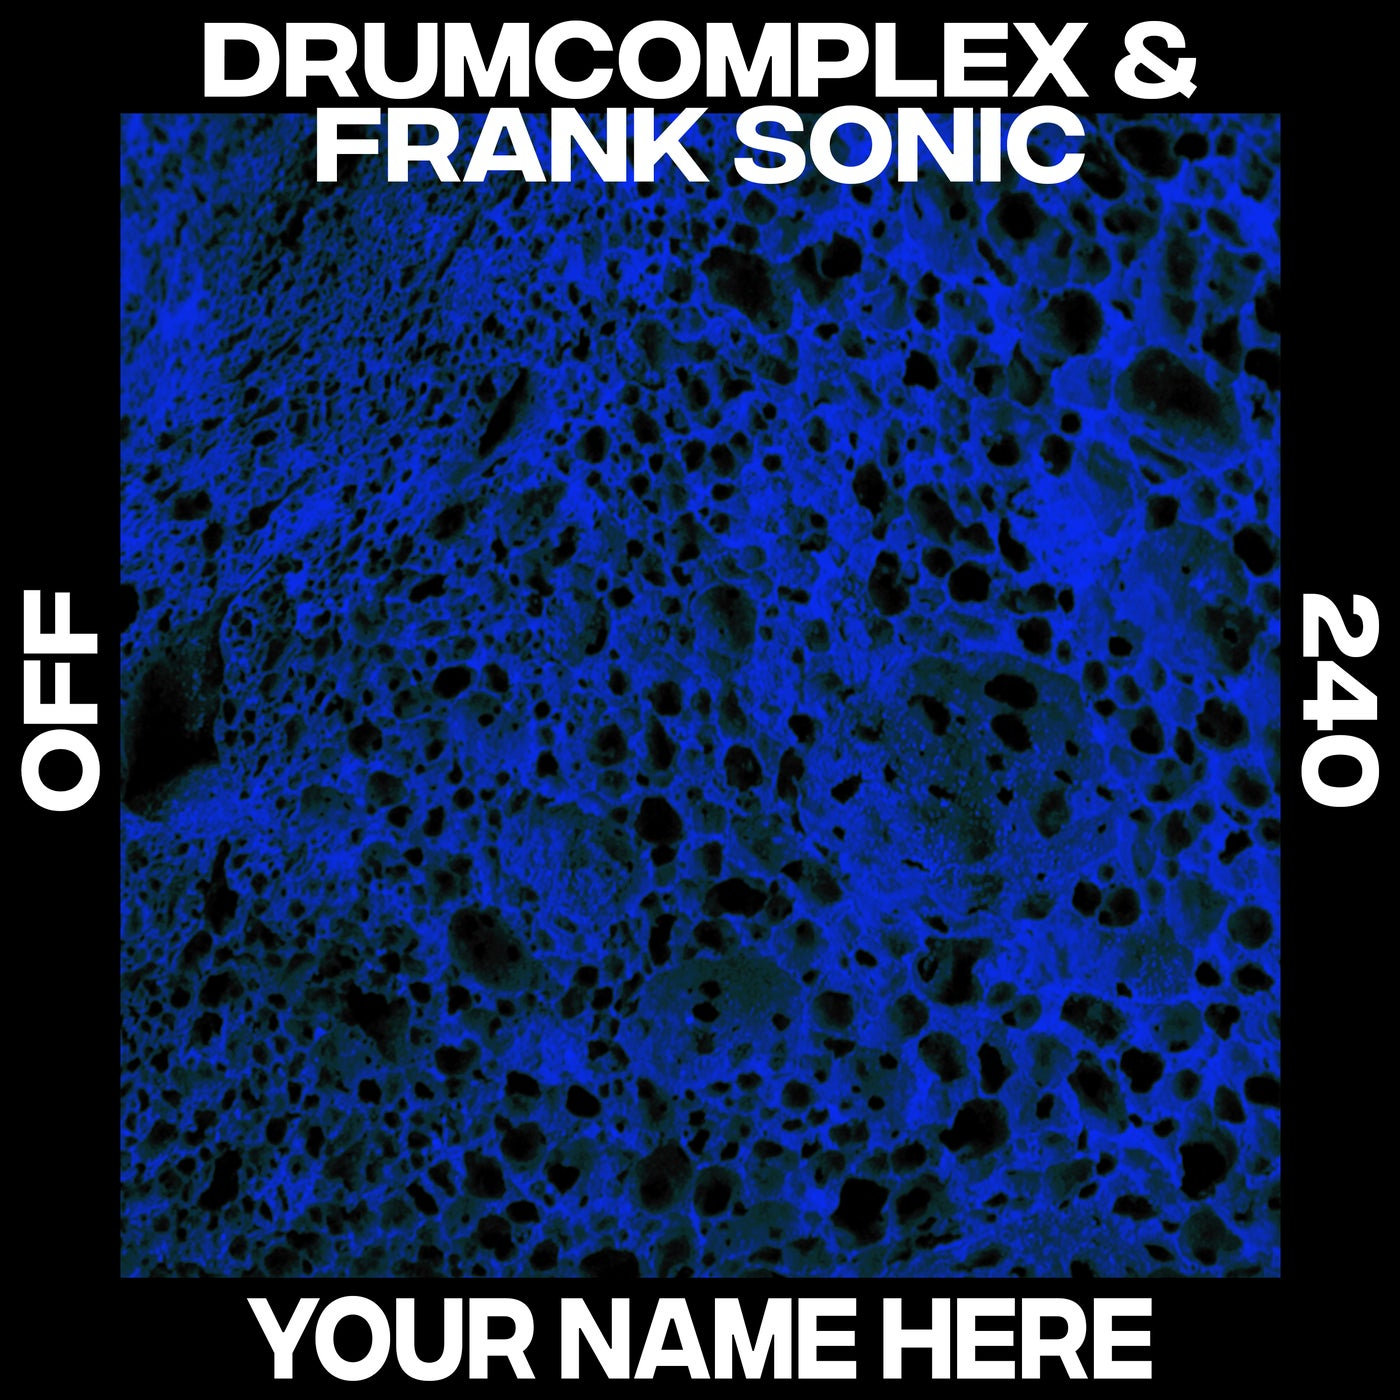 Drumcomplex, Frank Sonic - Your Name Here (2021)